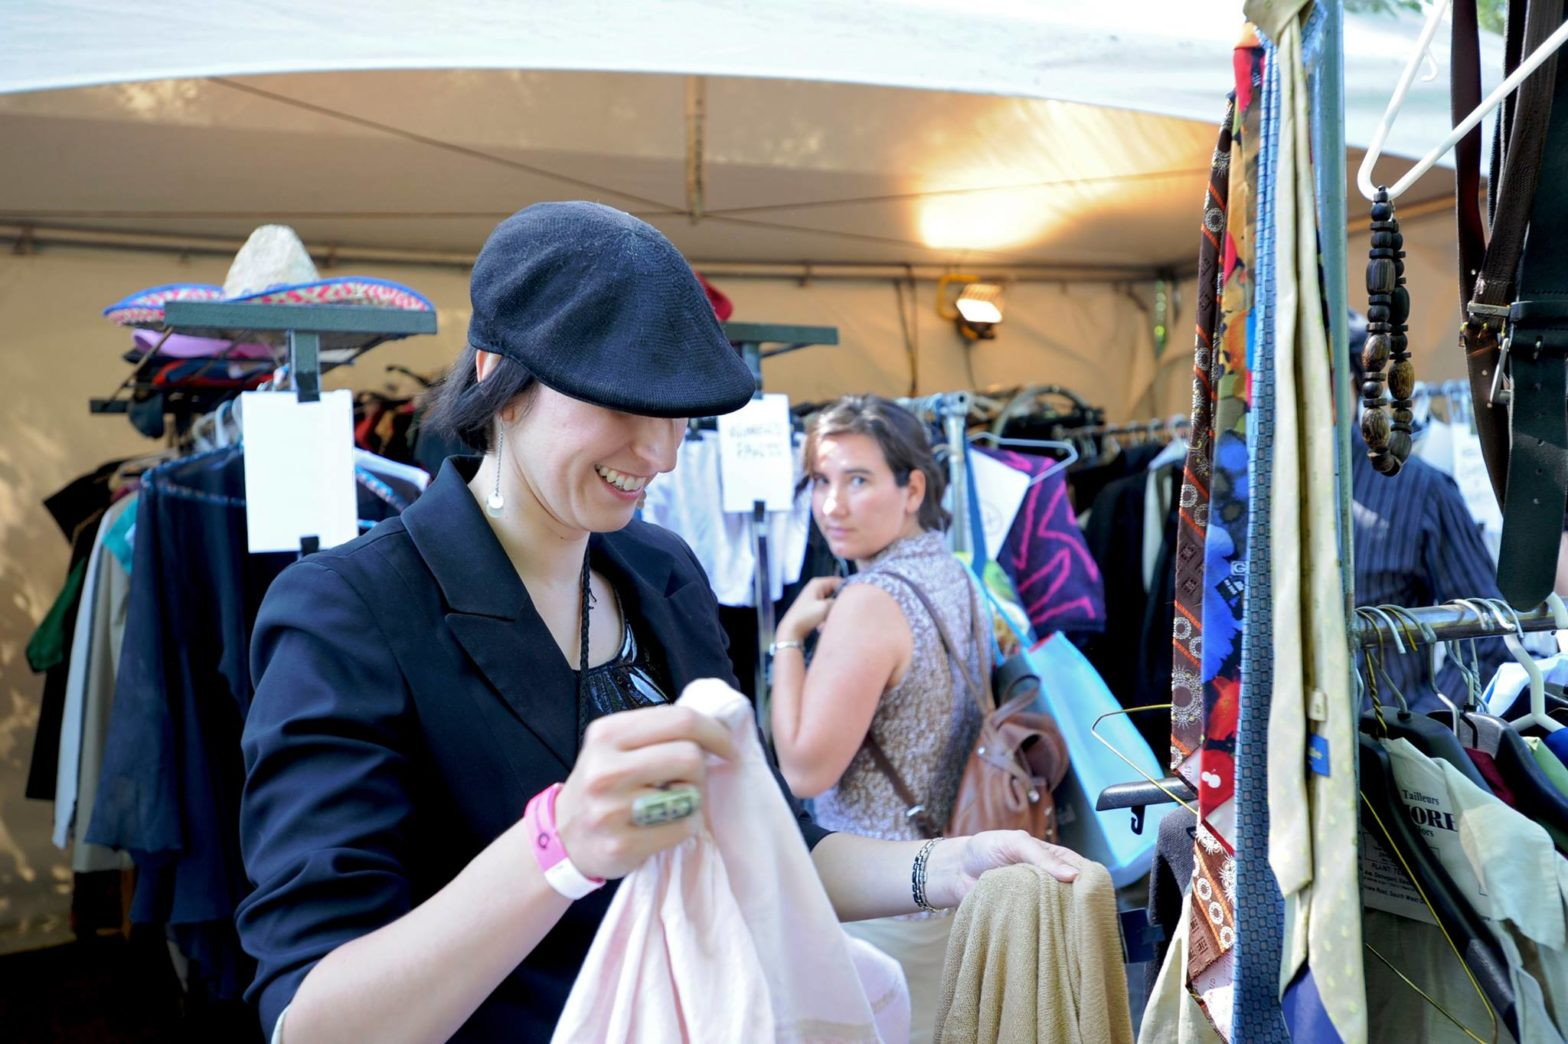 Photo of two people at a clothing swap. Photo courtesy The Gender Spectrum Collection through a Creative Commons license.